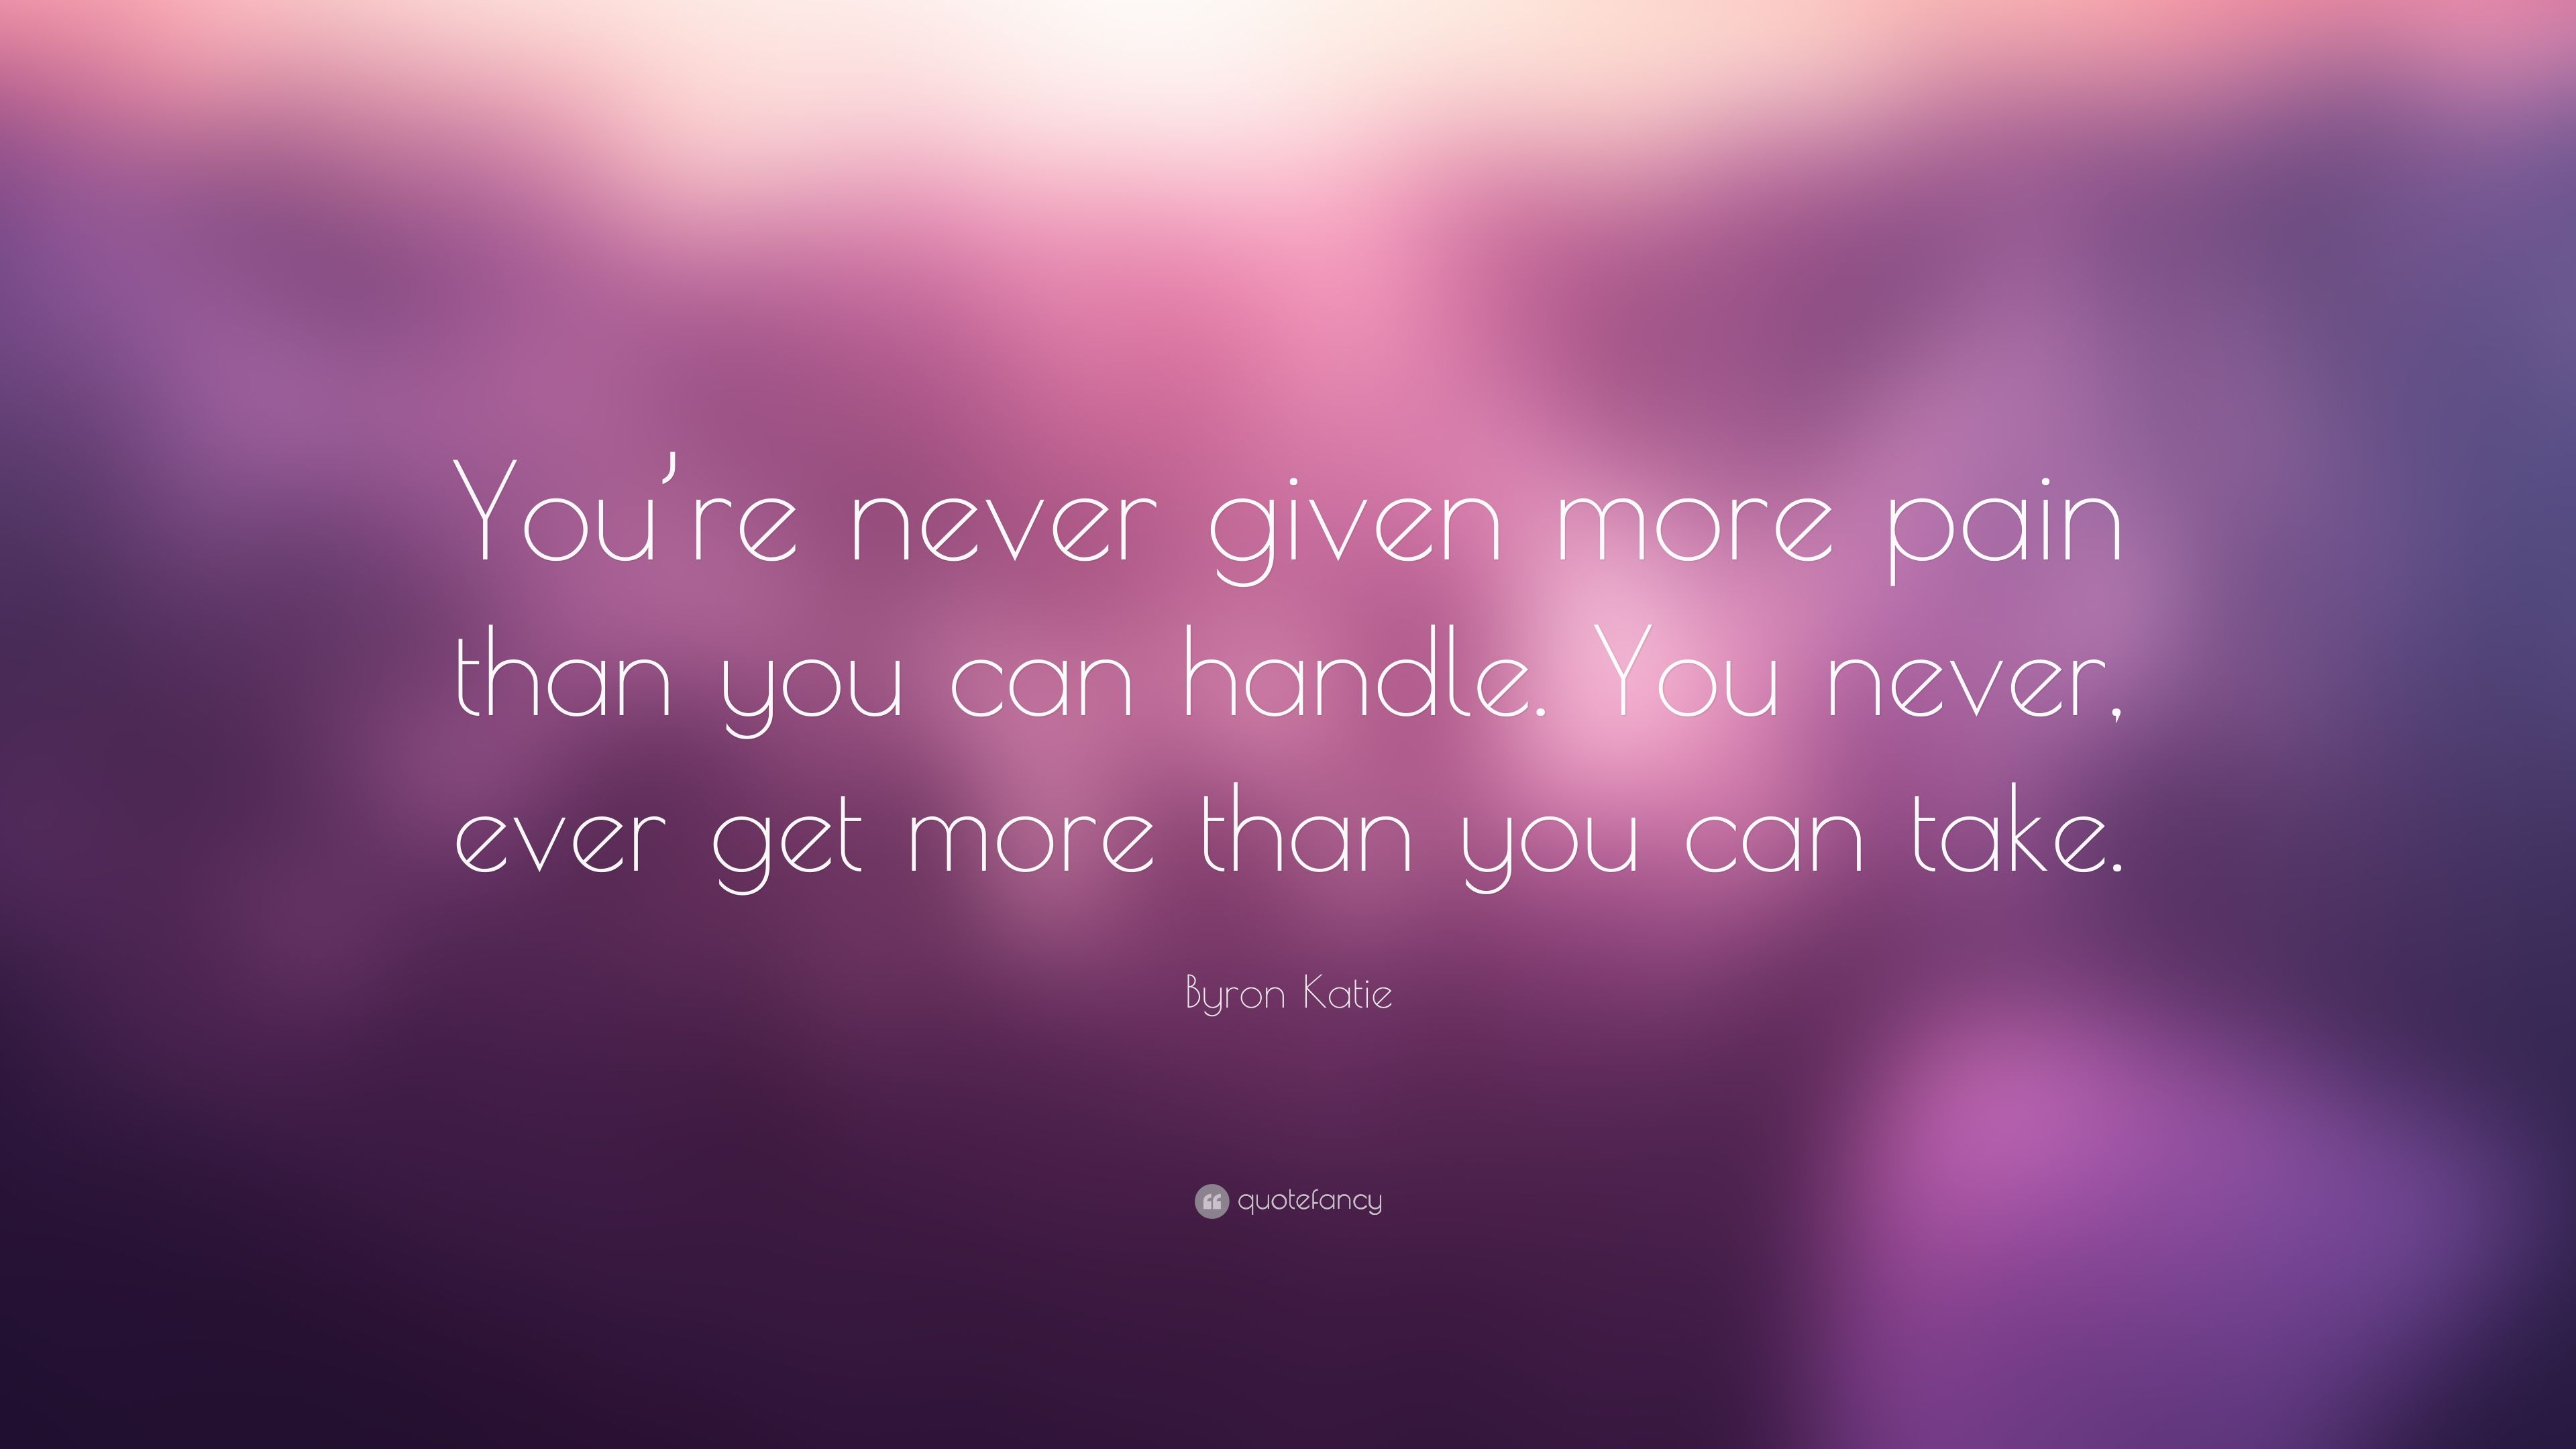 Byron Katie Quote Youre Never Given More Pain Than You Can Handle